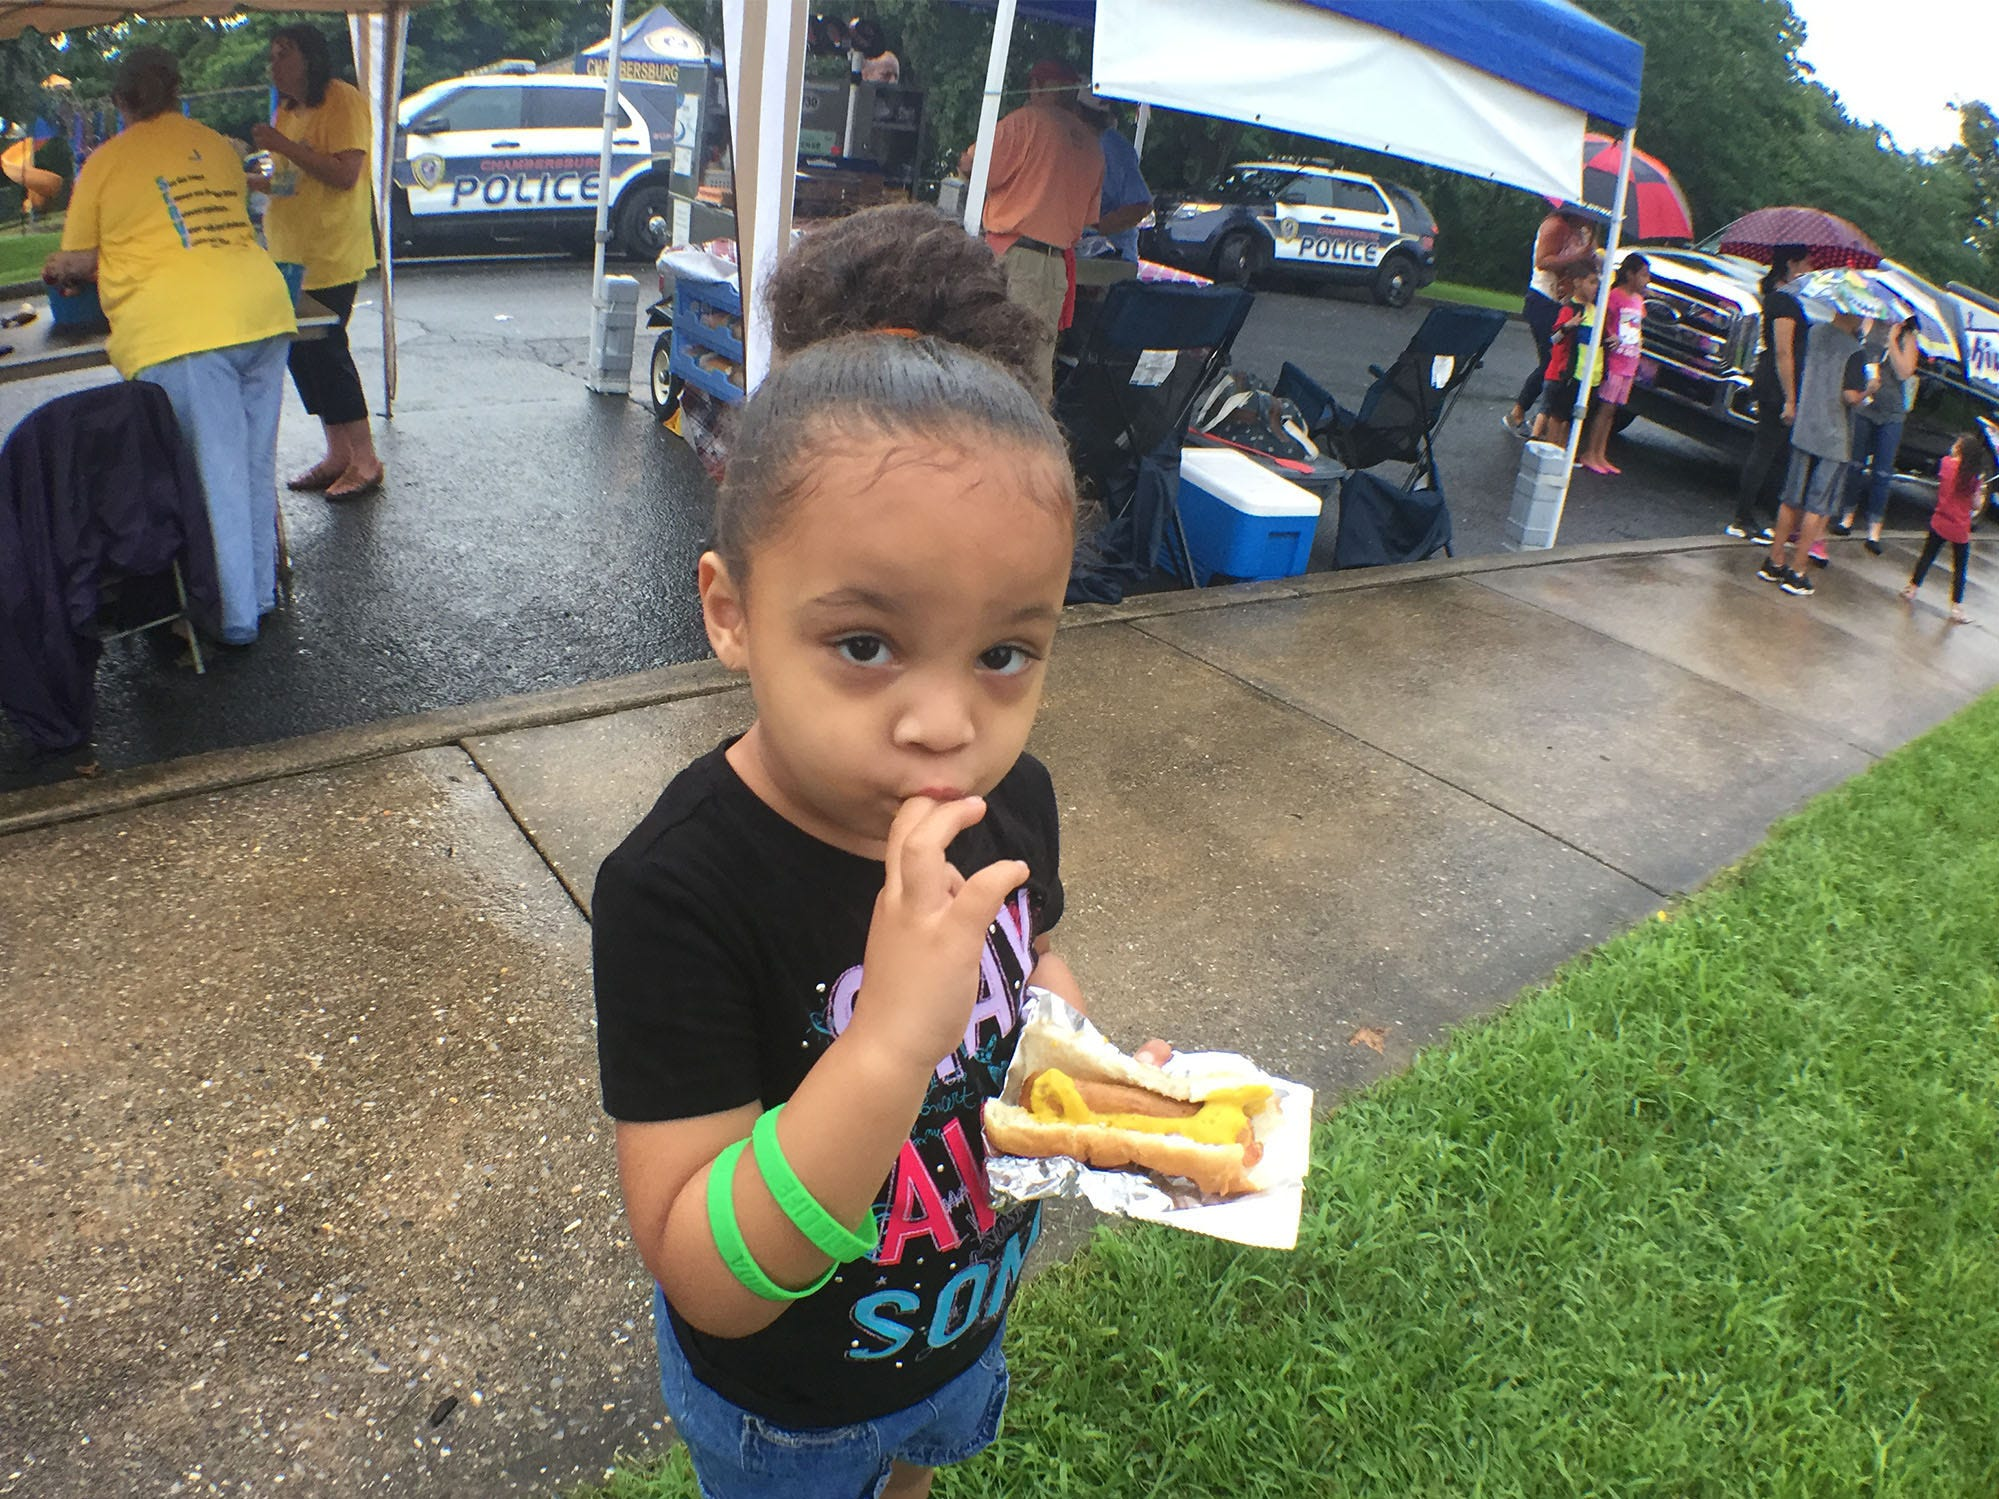 Jalaina Acosta, 3, licks mustard off her Pap's Dog Stop hot dog. Chambersburg Police Department National Night Out was held Tuesday, August 7, 2018 at the Franklin County Housing Authority complex. The annual event is designed to have community members get a chance to meet first responders.